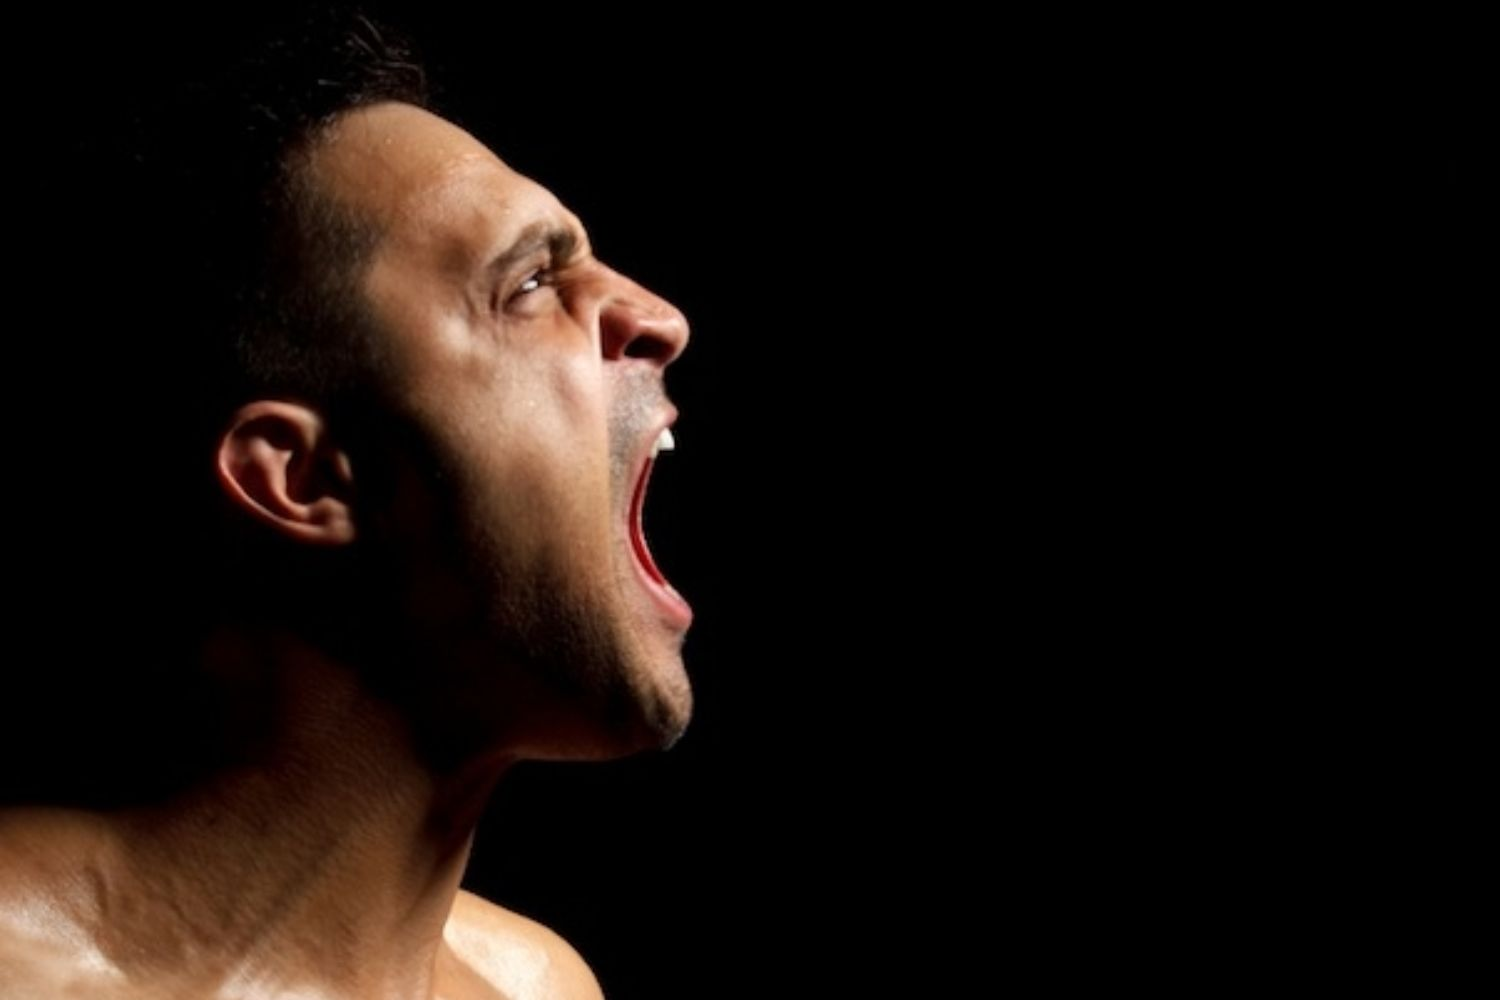 5 Important New Insights About Why We Get Angry